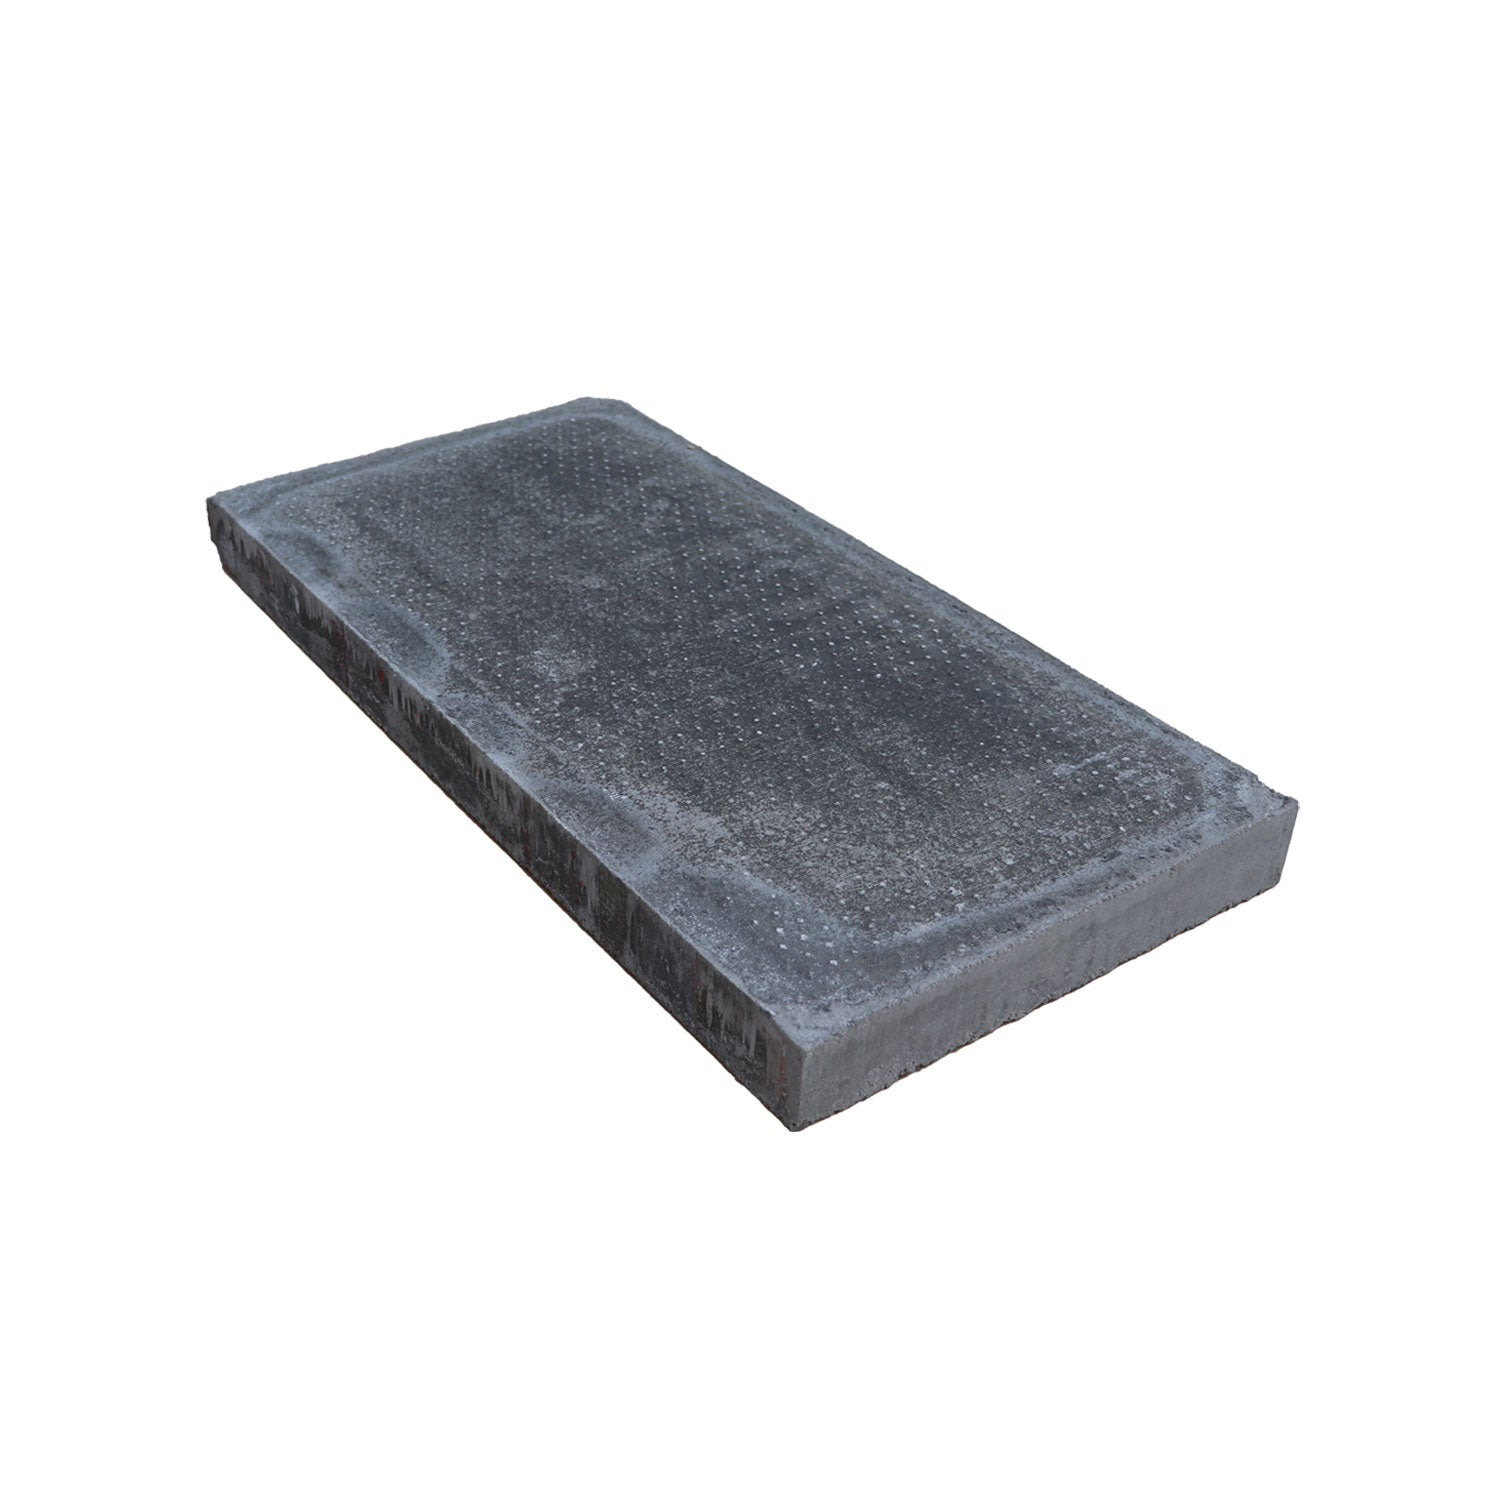 Grey Slab 600mm x 300mm x 35mm